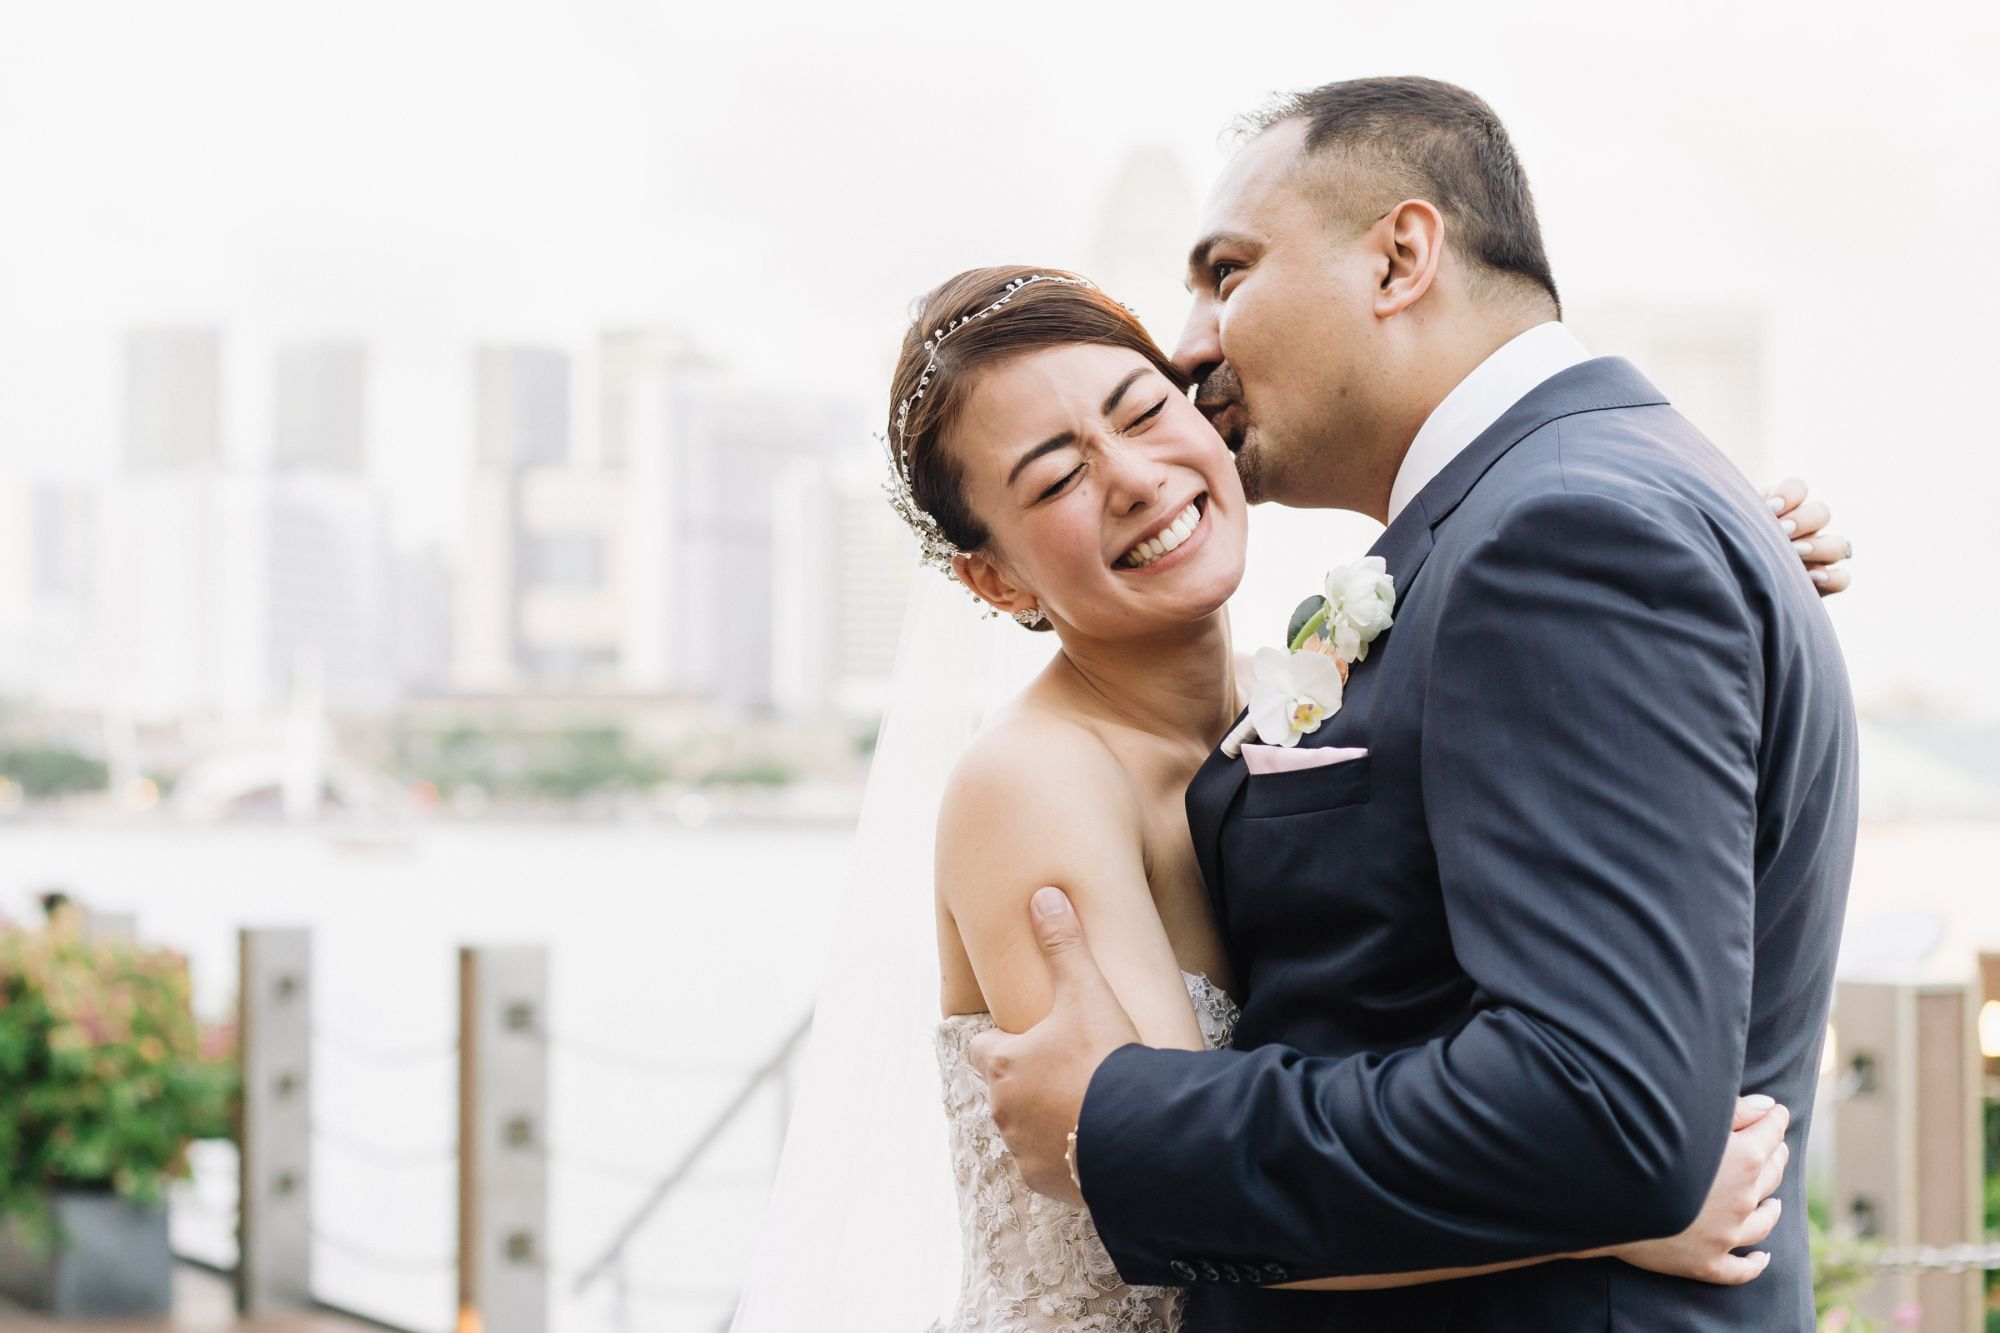 This Australian-Japanese Couple Incorporated Elements of Their Cultures into Their Singapore Wedding